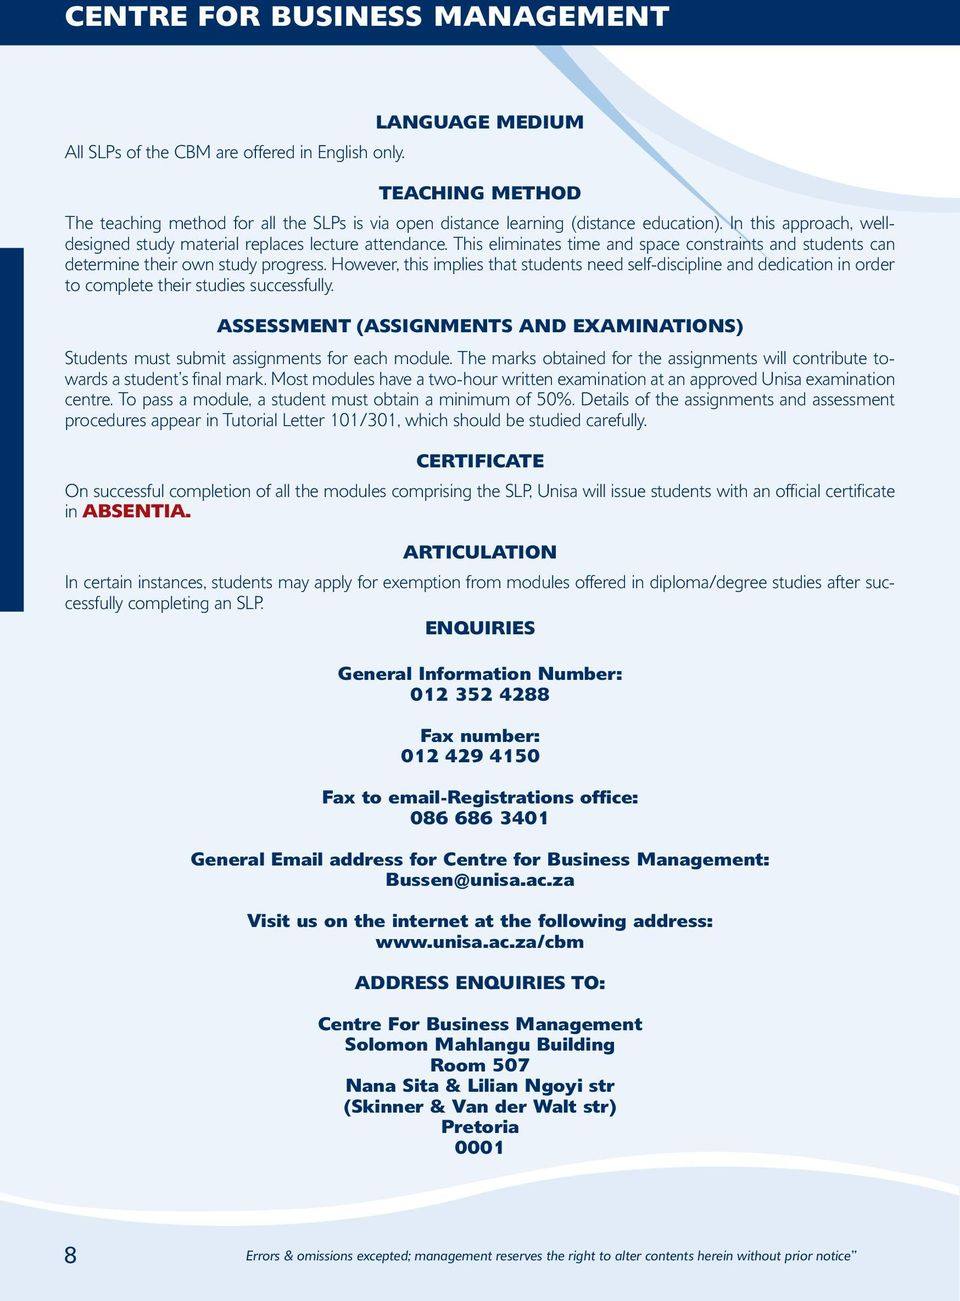 Mission Of The Centre For Business Management Pdf